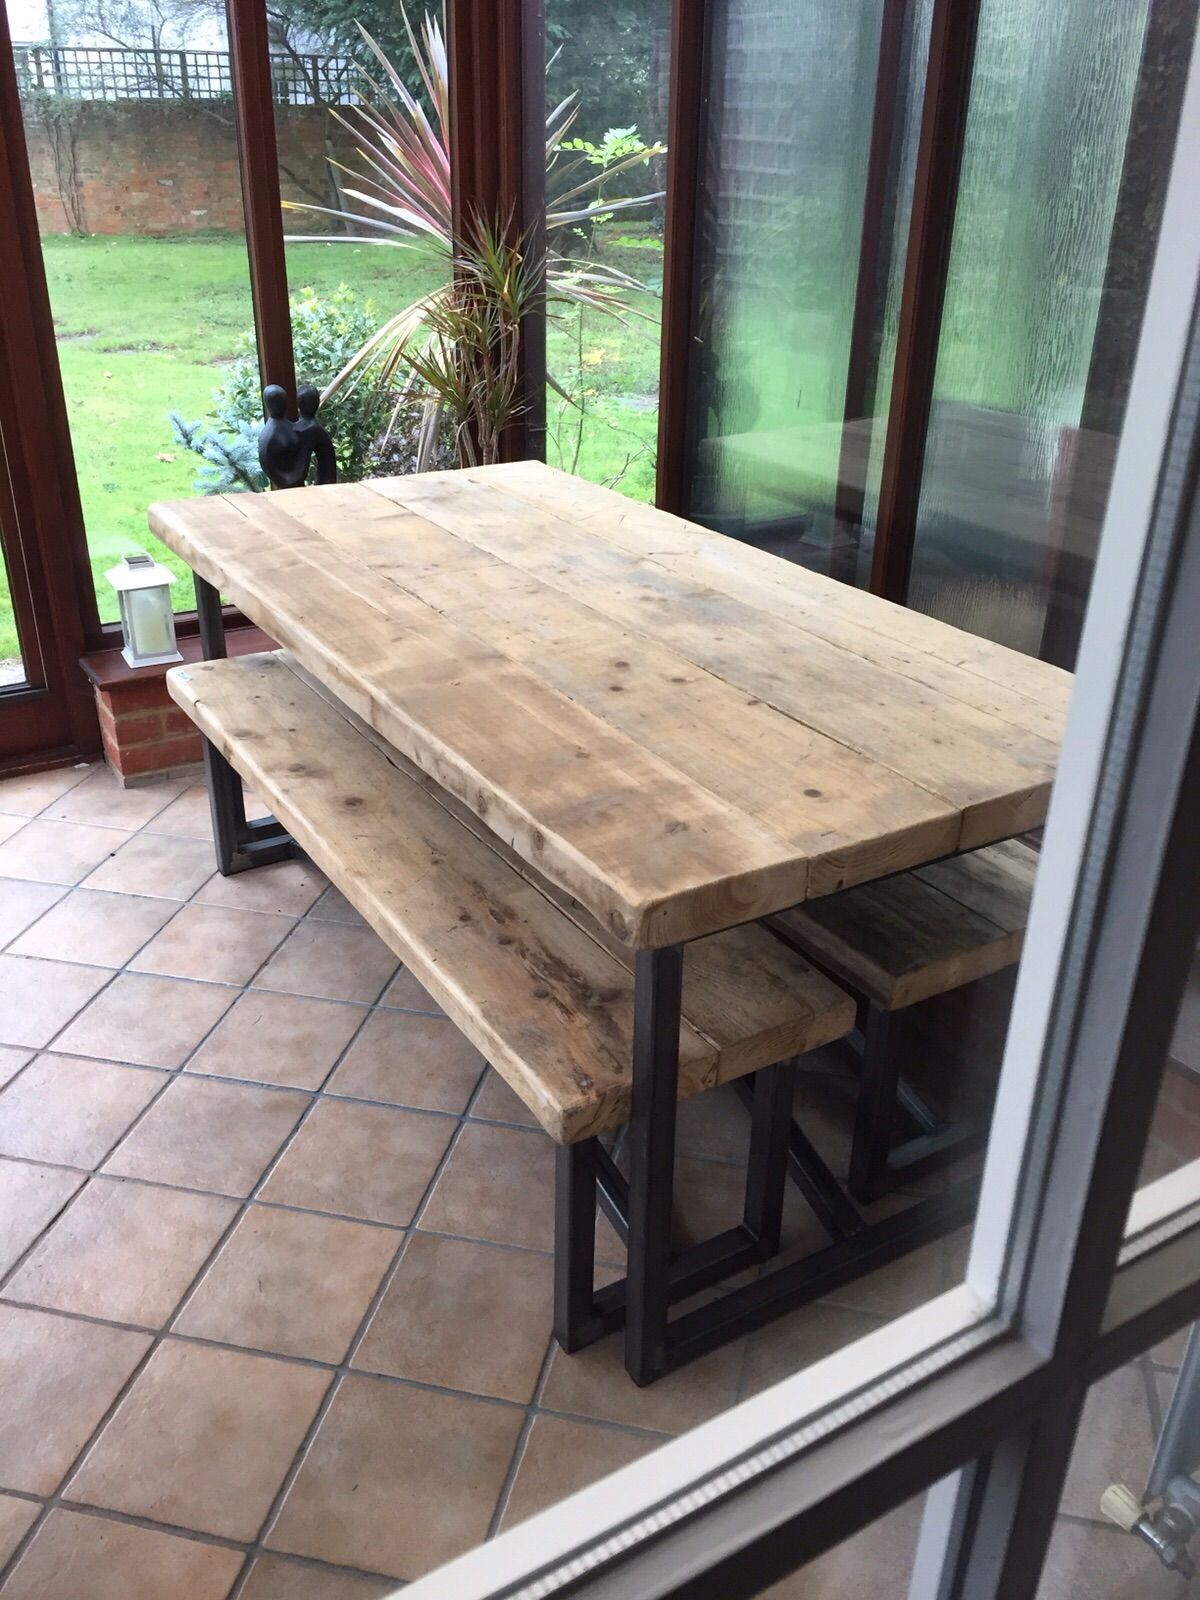 Industrial Mill Style Large Reclaimed Wood Dining Table Benches Www Reclaimedbespoke Co Dining Table With Bench Wooden Kitchen Table Wood Dining Room Table